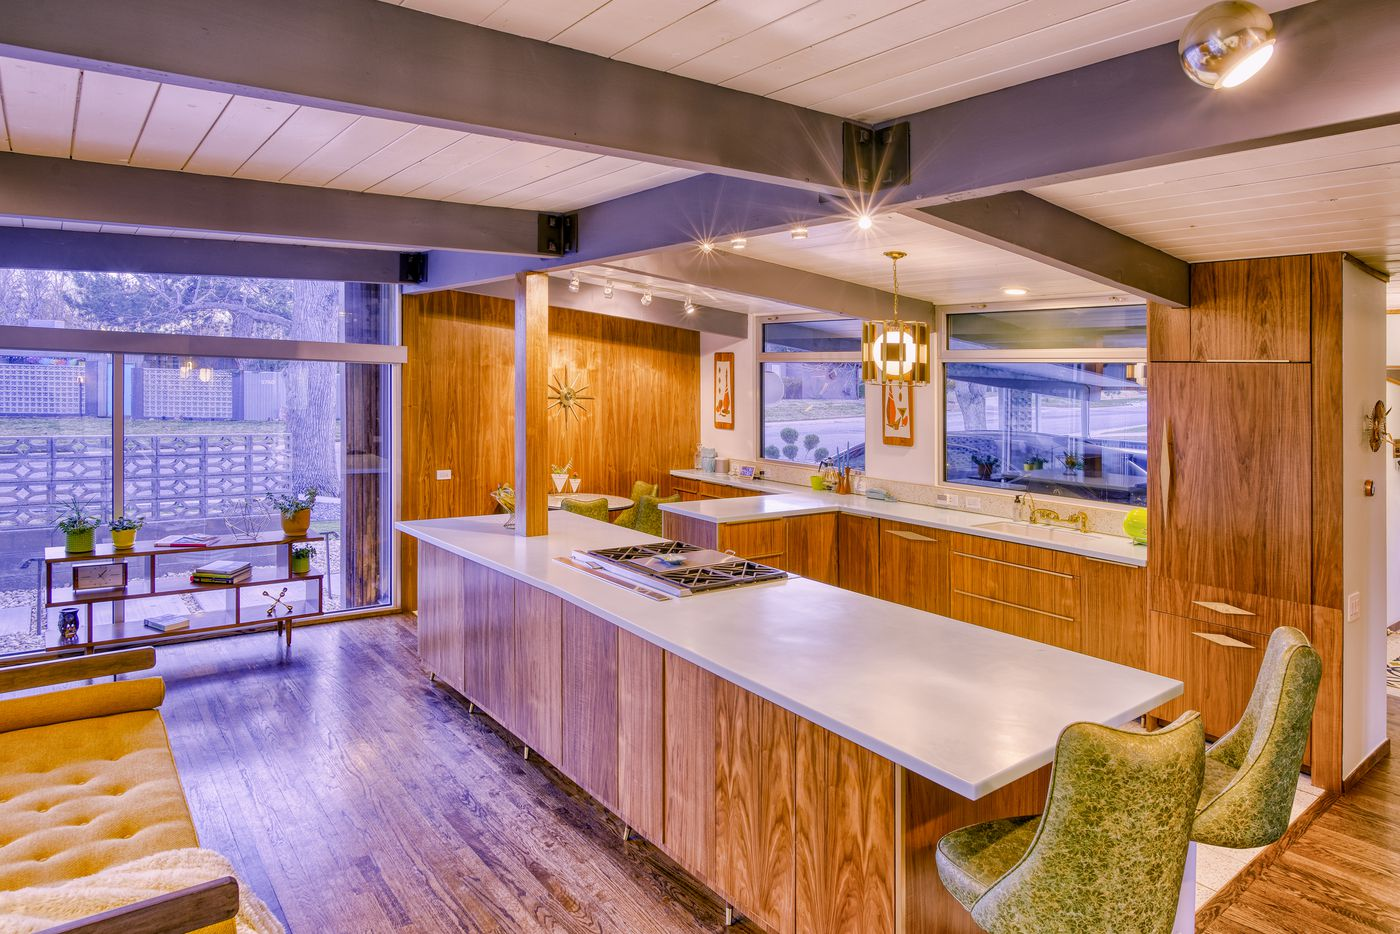 Renovating a midcentury modern home: 9 tips from an expert ... on kitchen construction ideas, kitchen cabinet sink base bump, kitchen extensions ideas, kitchen and family room additions, kitchen view ideas, kitchen knock out ideas, kitchen cabinet crown, kitchen and dining room layouts, kitchen fireplace ideas, kitchen cut out ideas, kitchen addition ideas, small kitchen remodeling ideas, kitchen set up ideas, kitchen family room ideas, kitchen pop out ideas, kitchen wall bump-outs, kitchen hardwood flooring ideas, kitchen planning ideas,